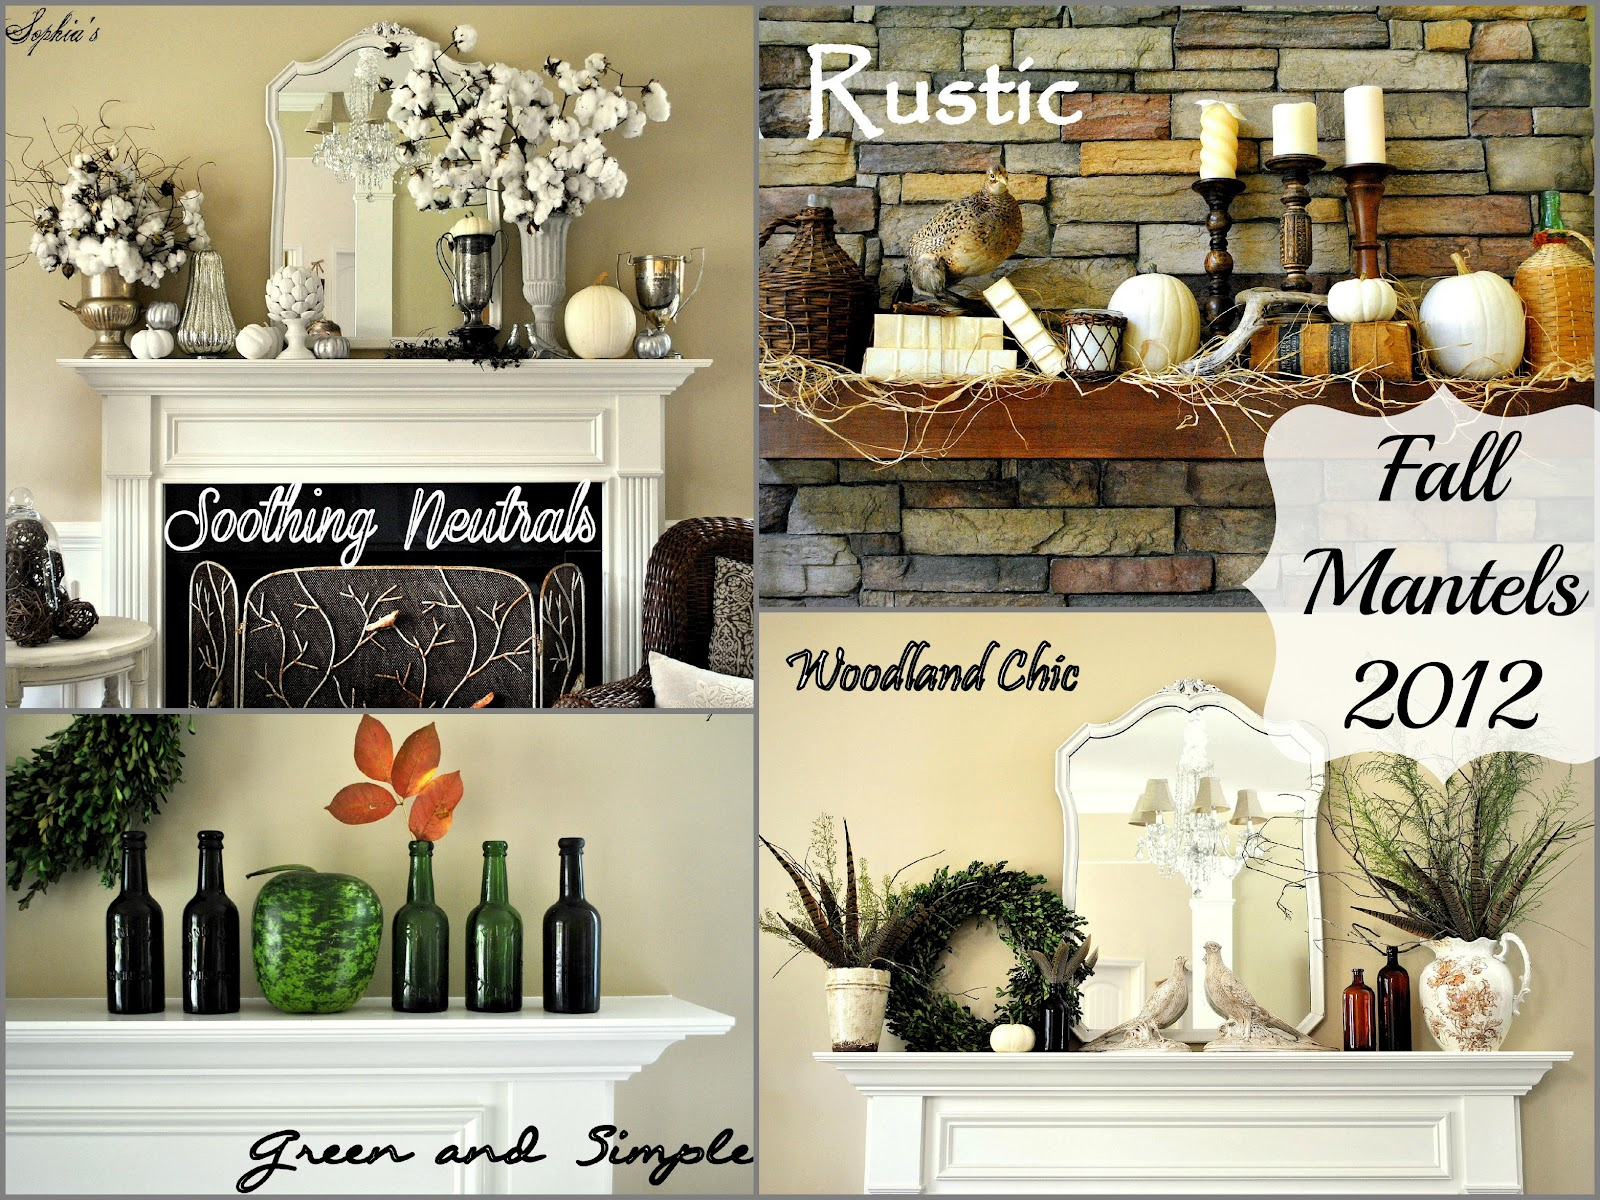 My Fall Mantels 2012